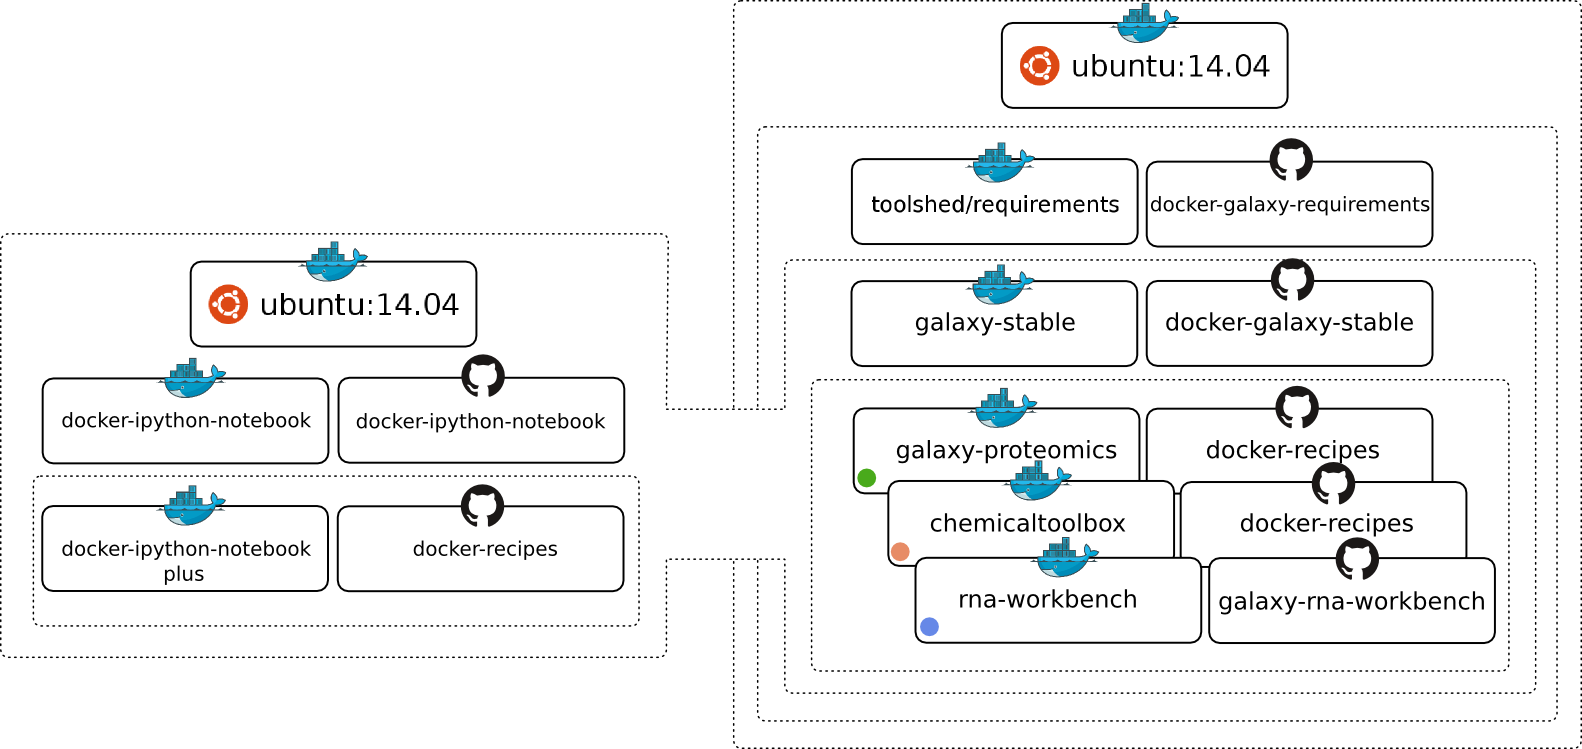 docker-galaxy-stable/README md at master · bgruening/docker-galaxy